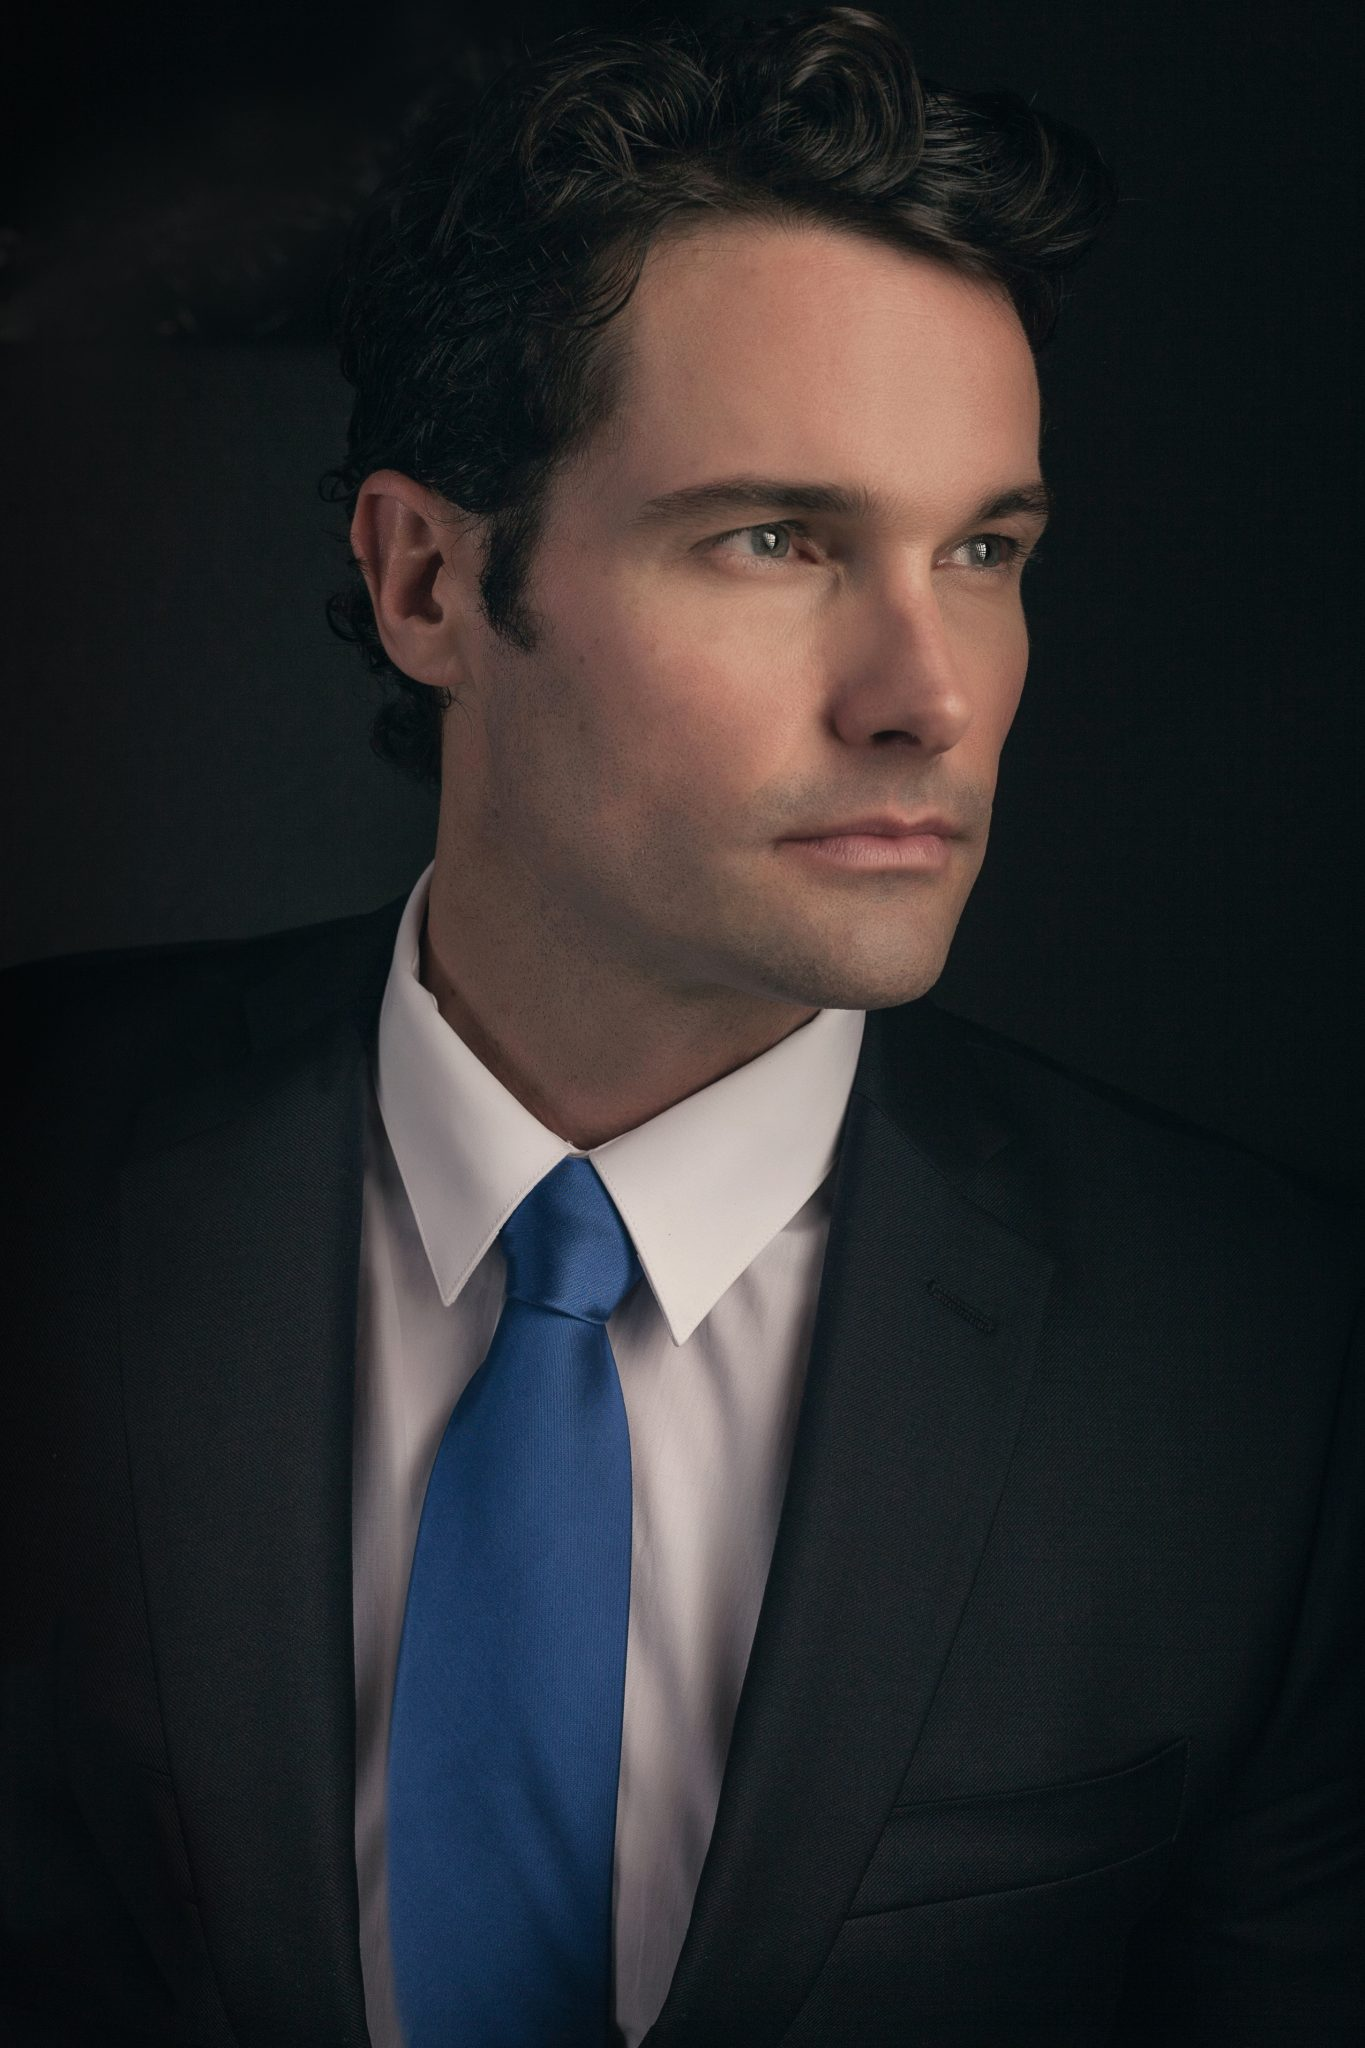 Corporate headshot portrait in Las Vegas.